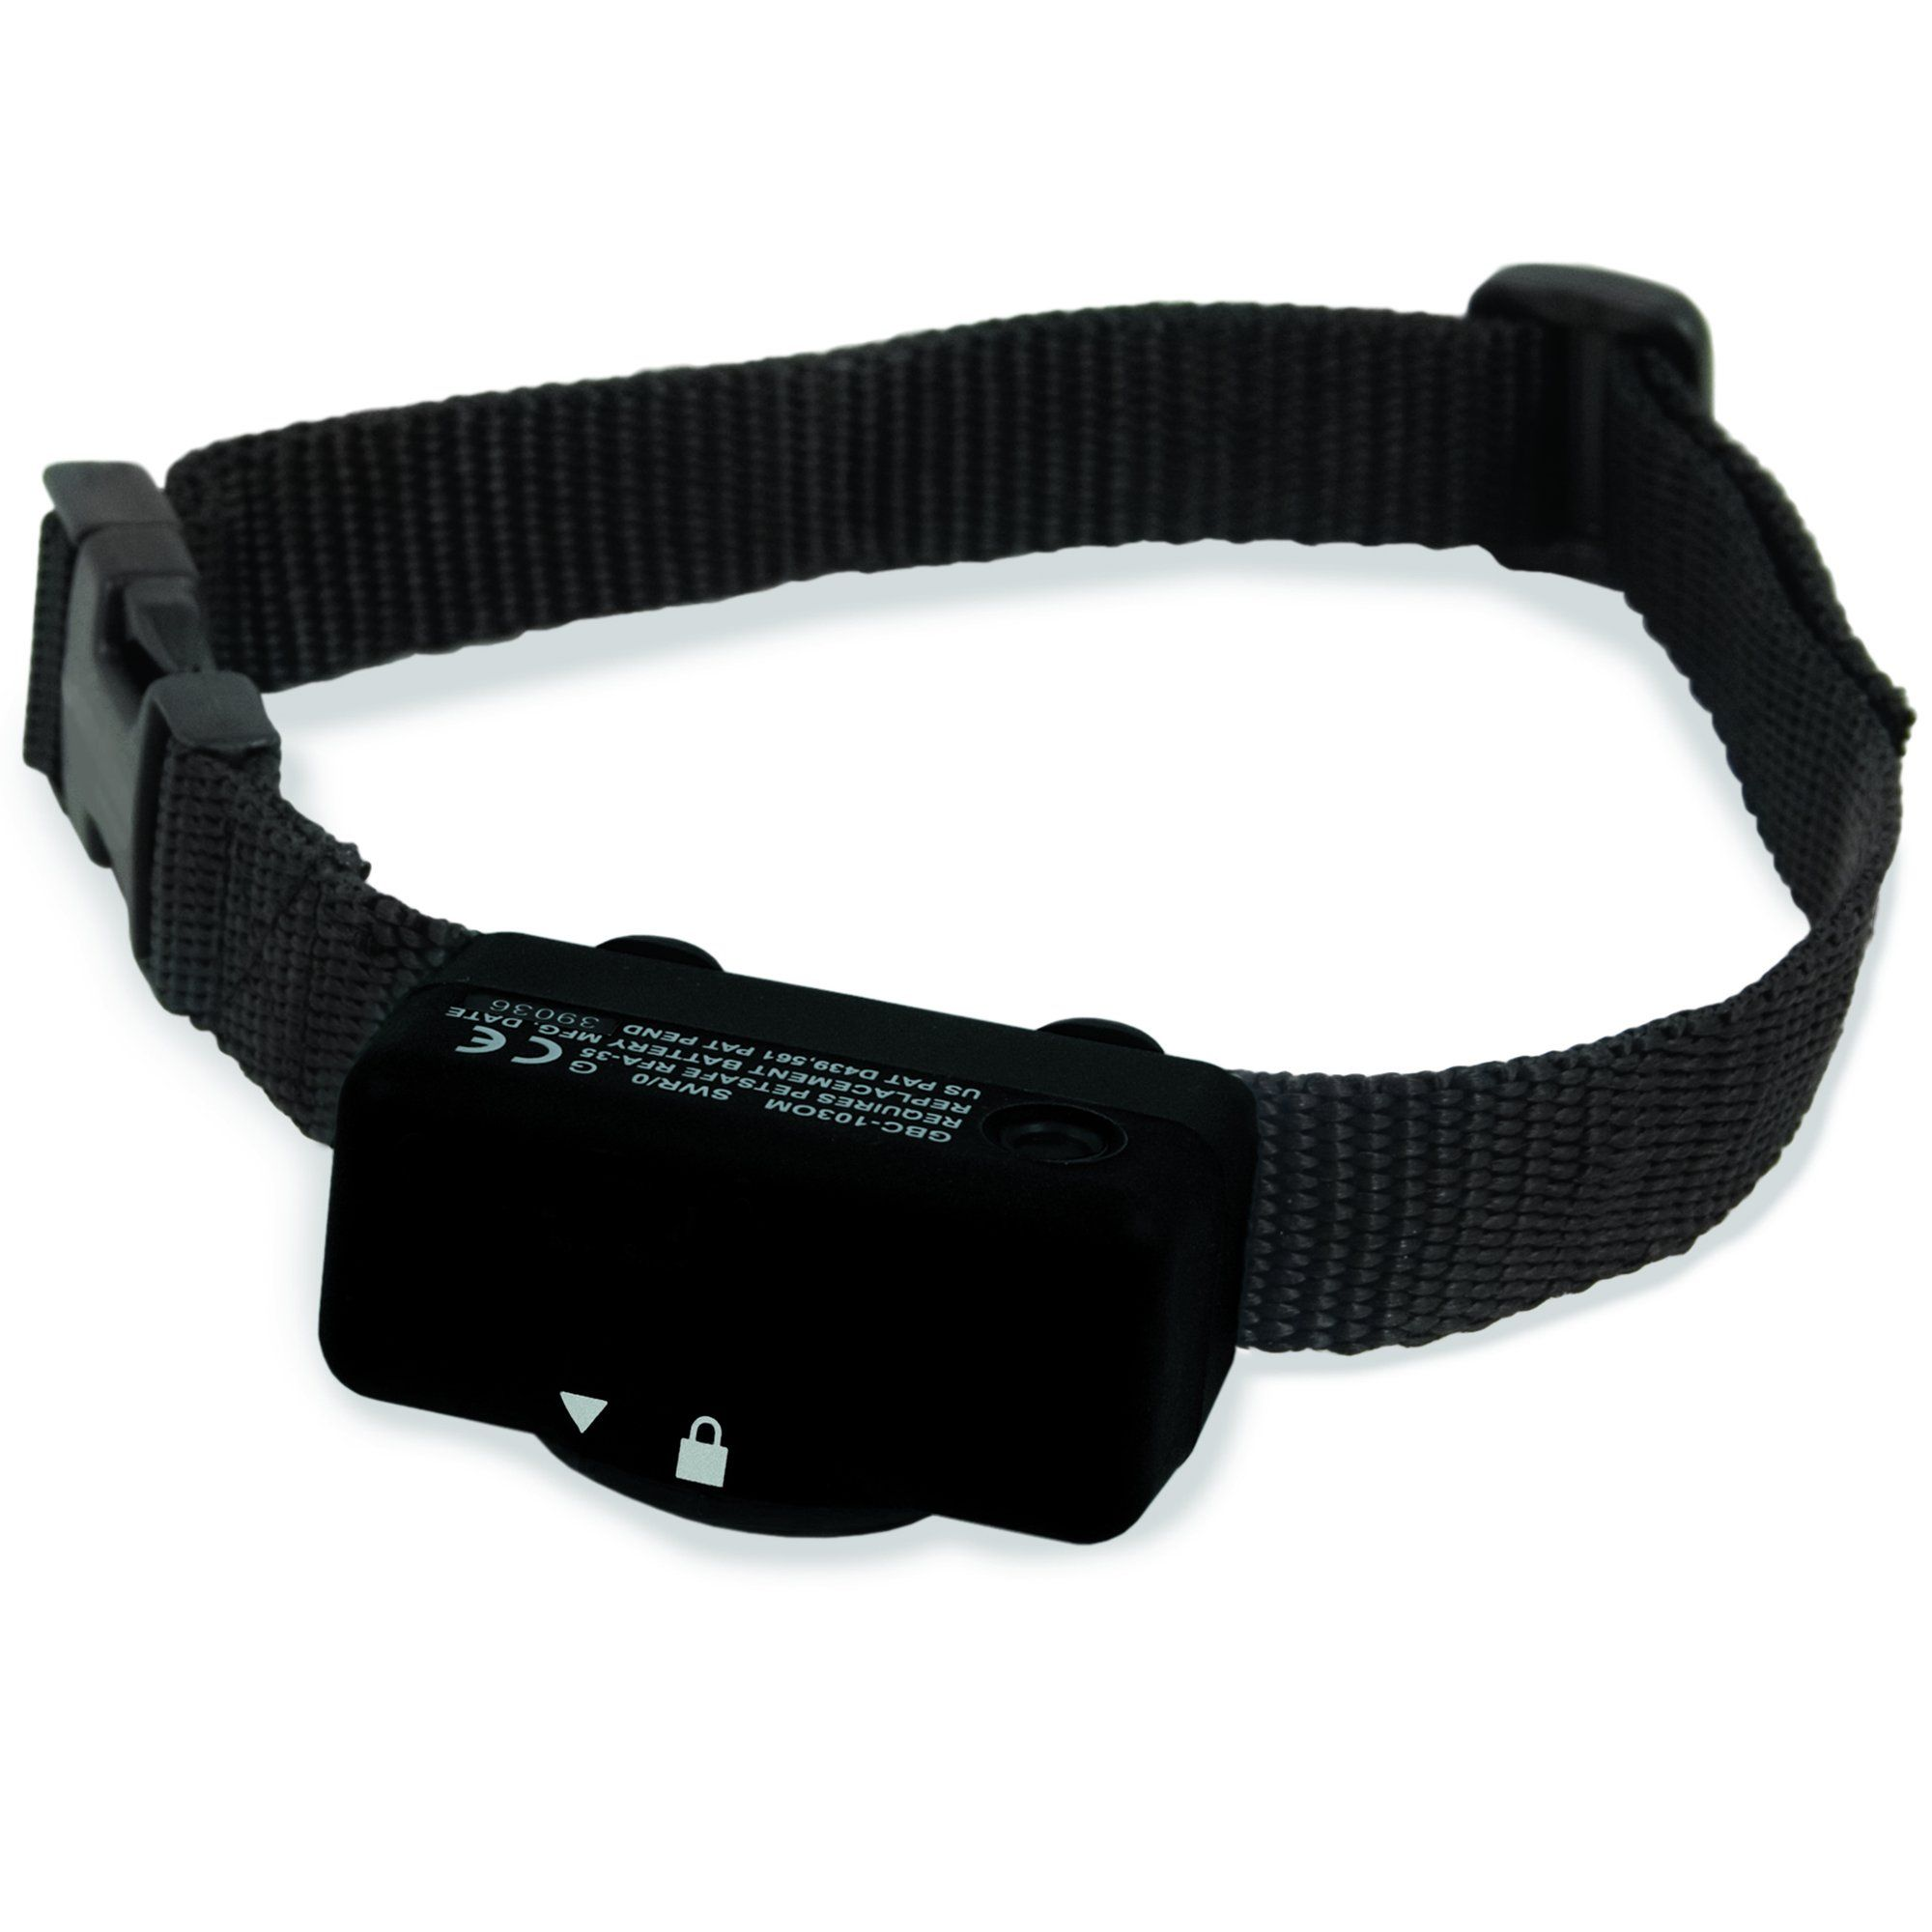 Petsafe Silent Dog Antibark Shock Collar Black Read More Reviews Of The Product By Visiting The Link On The With Images Shock Collar Training Collar Dog Training Pads